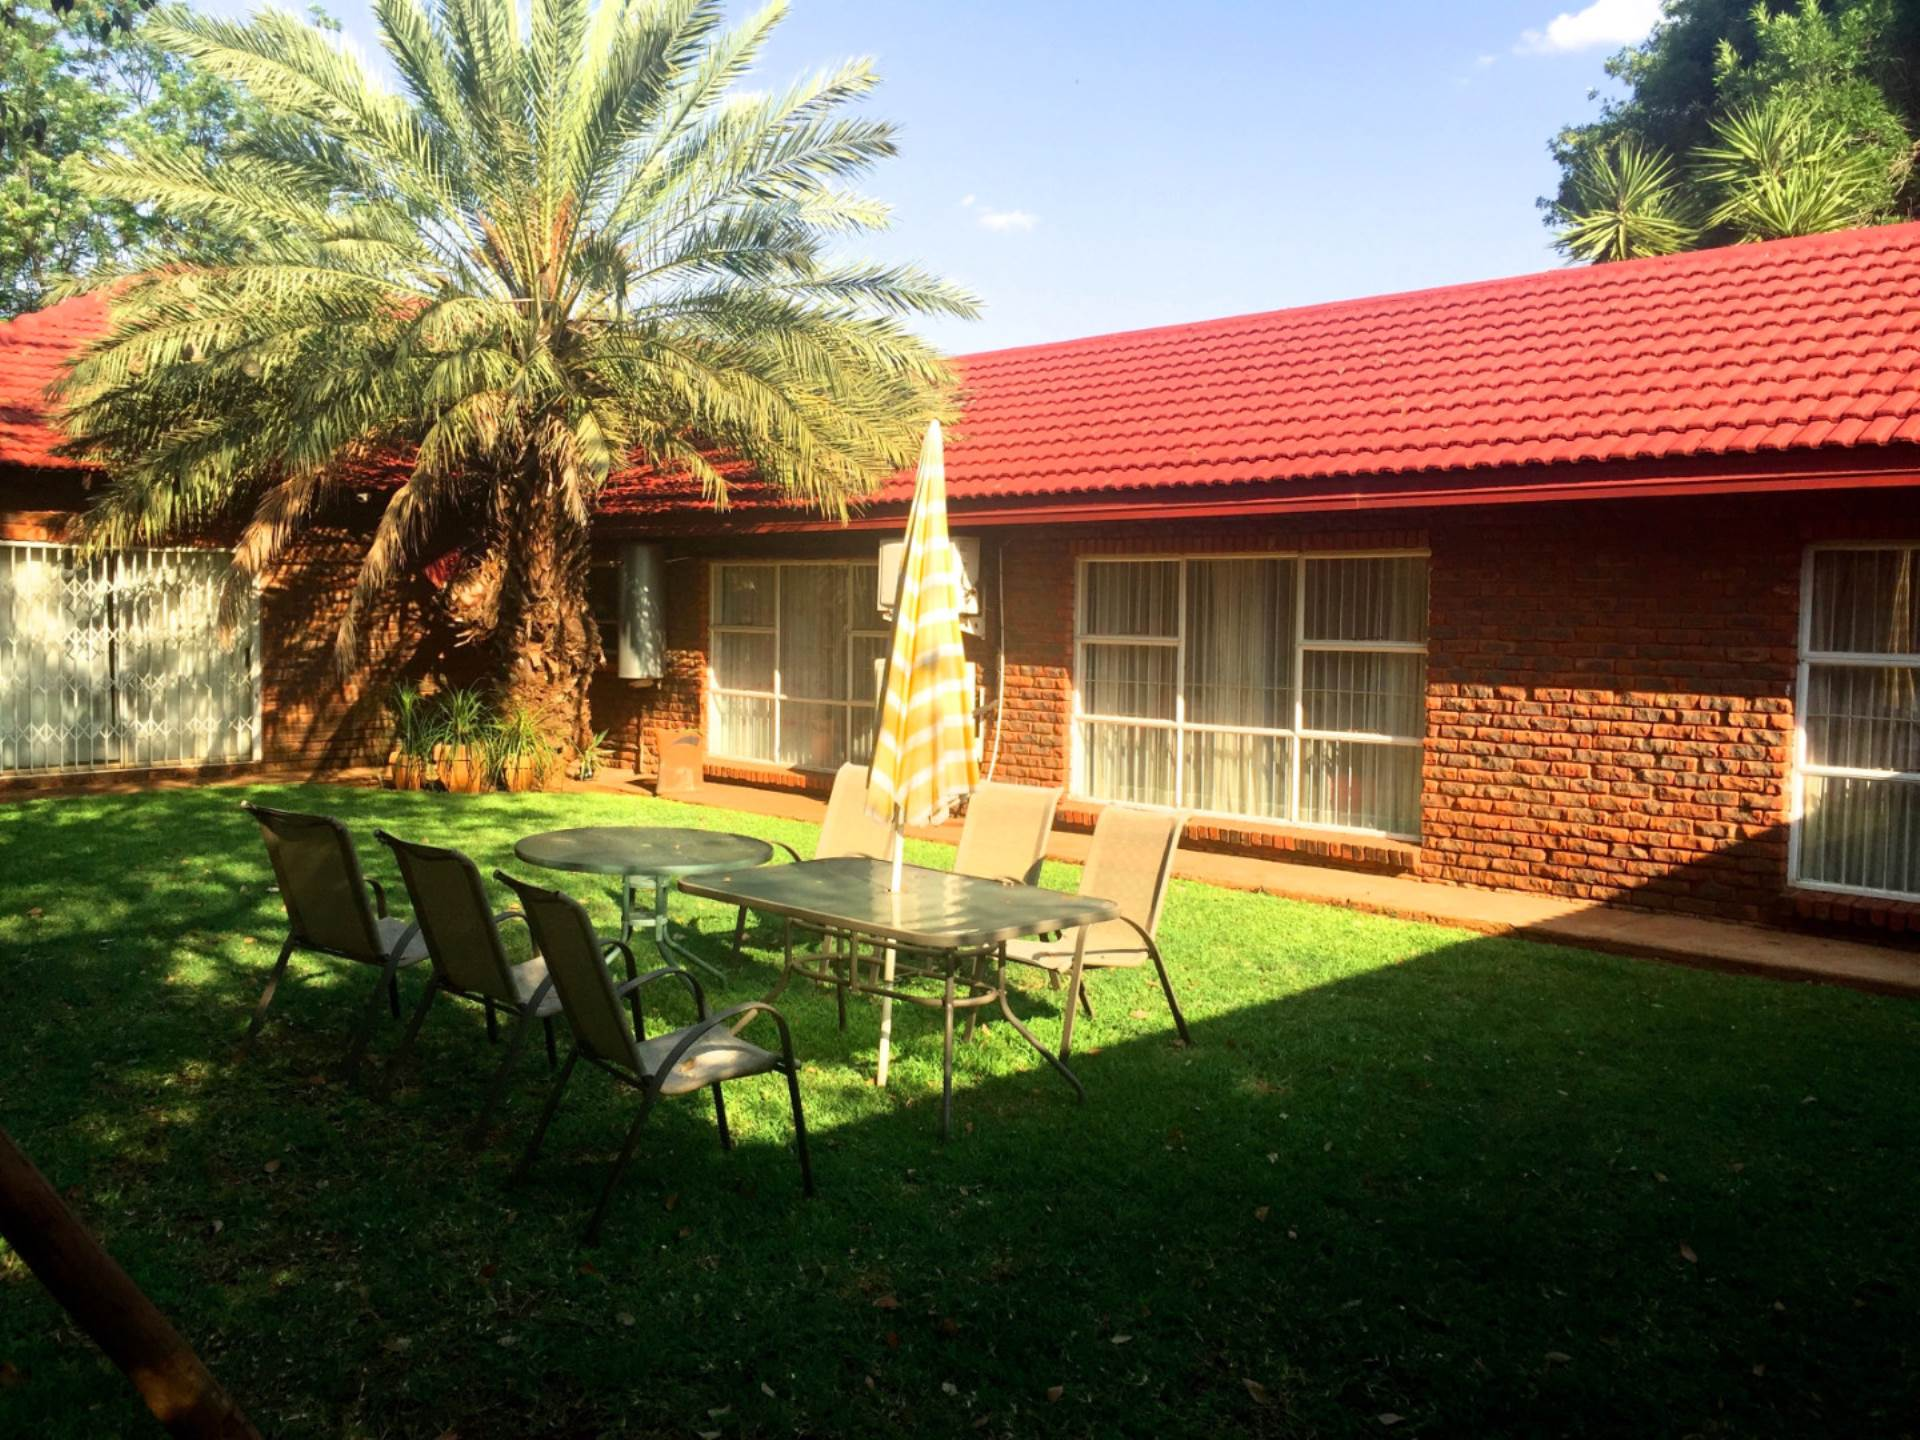 5 BedroomFarm For Sale In Rietfontein